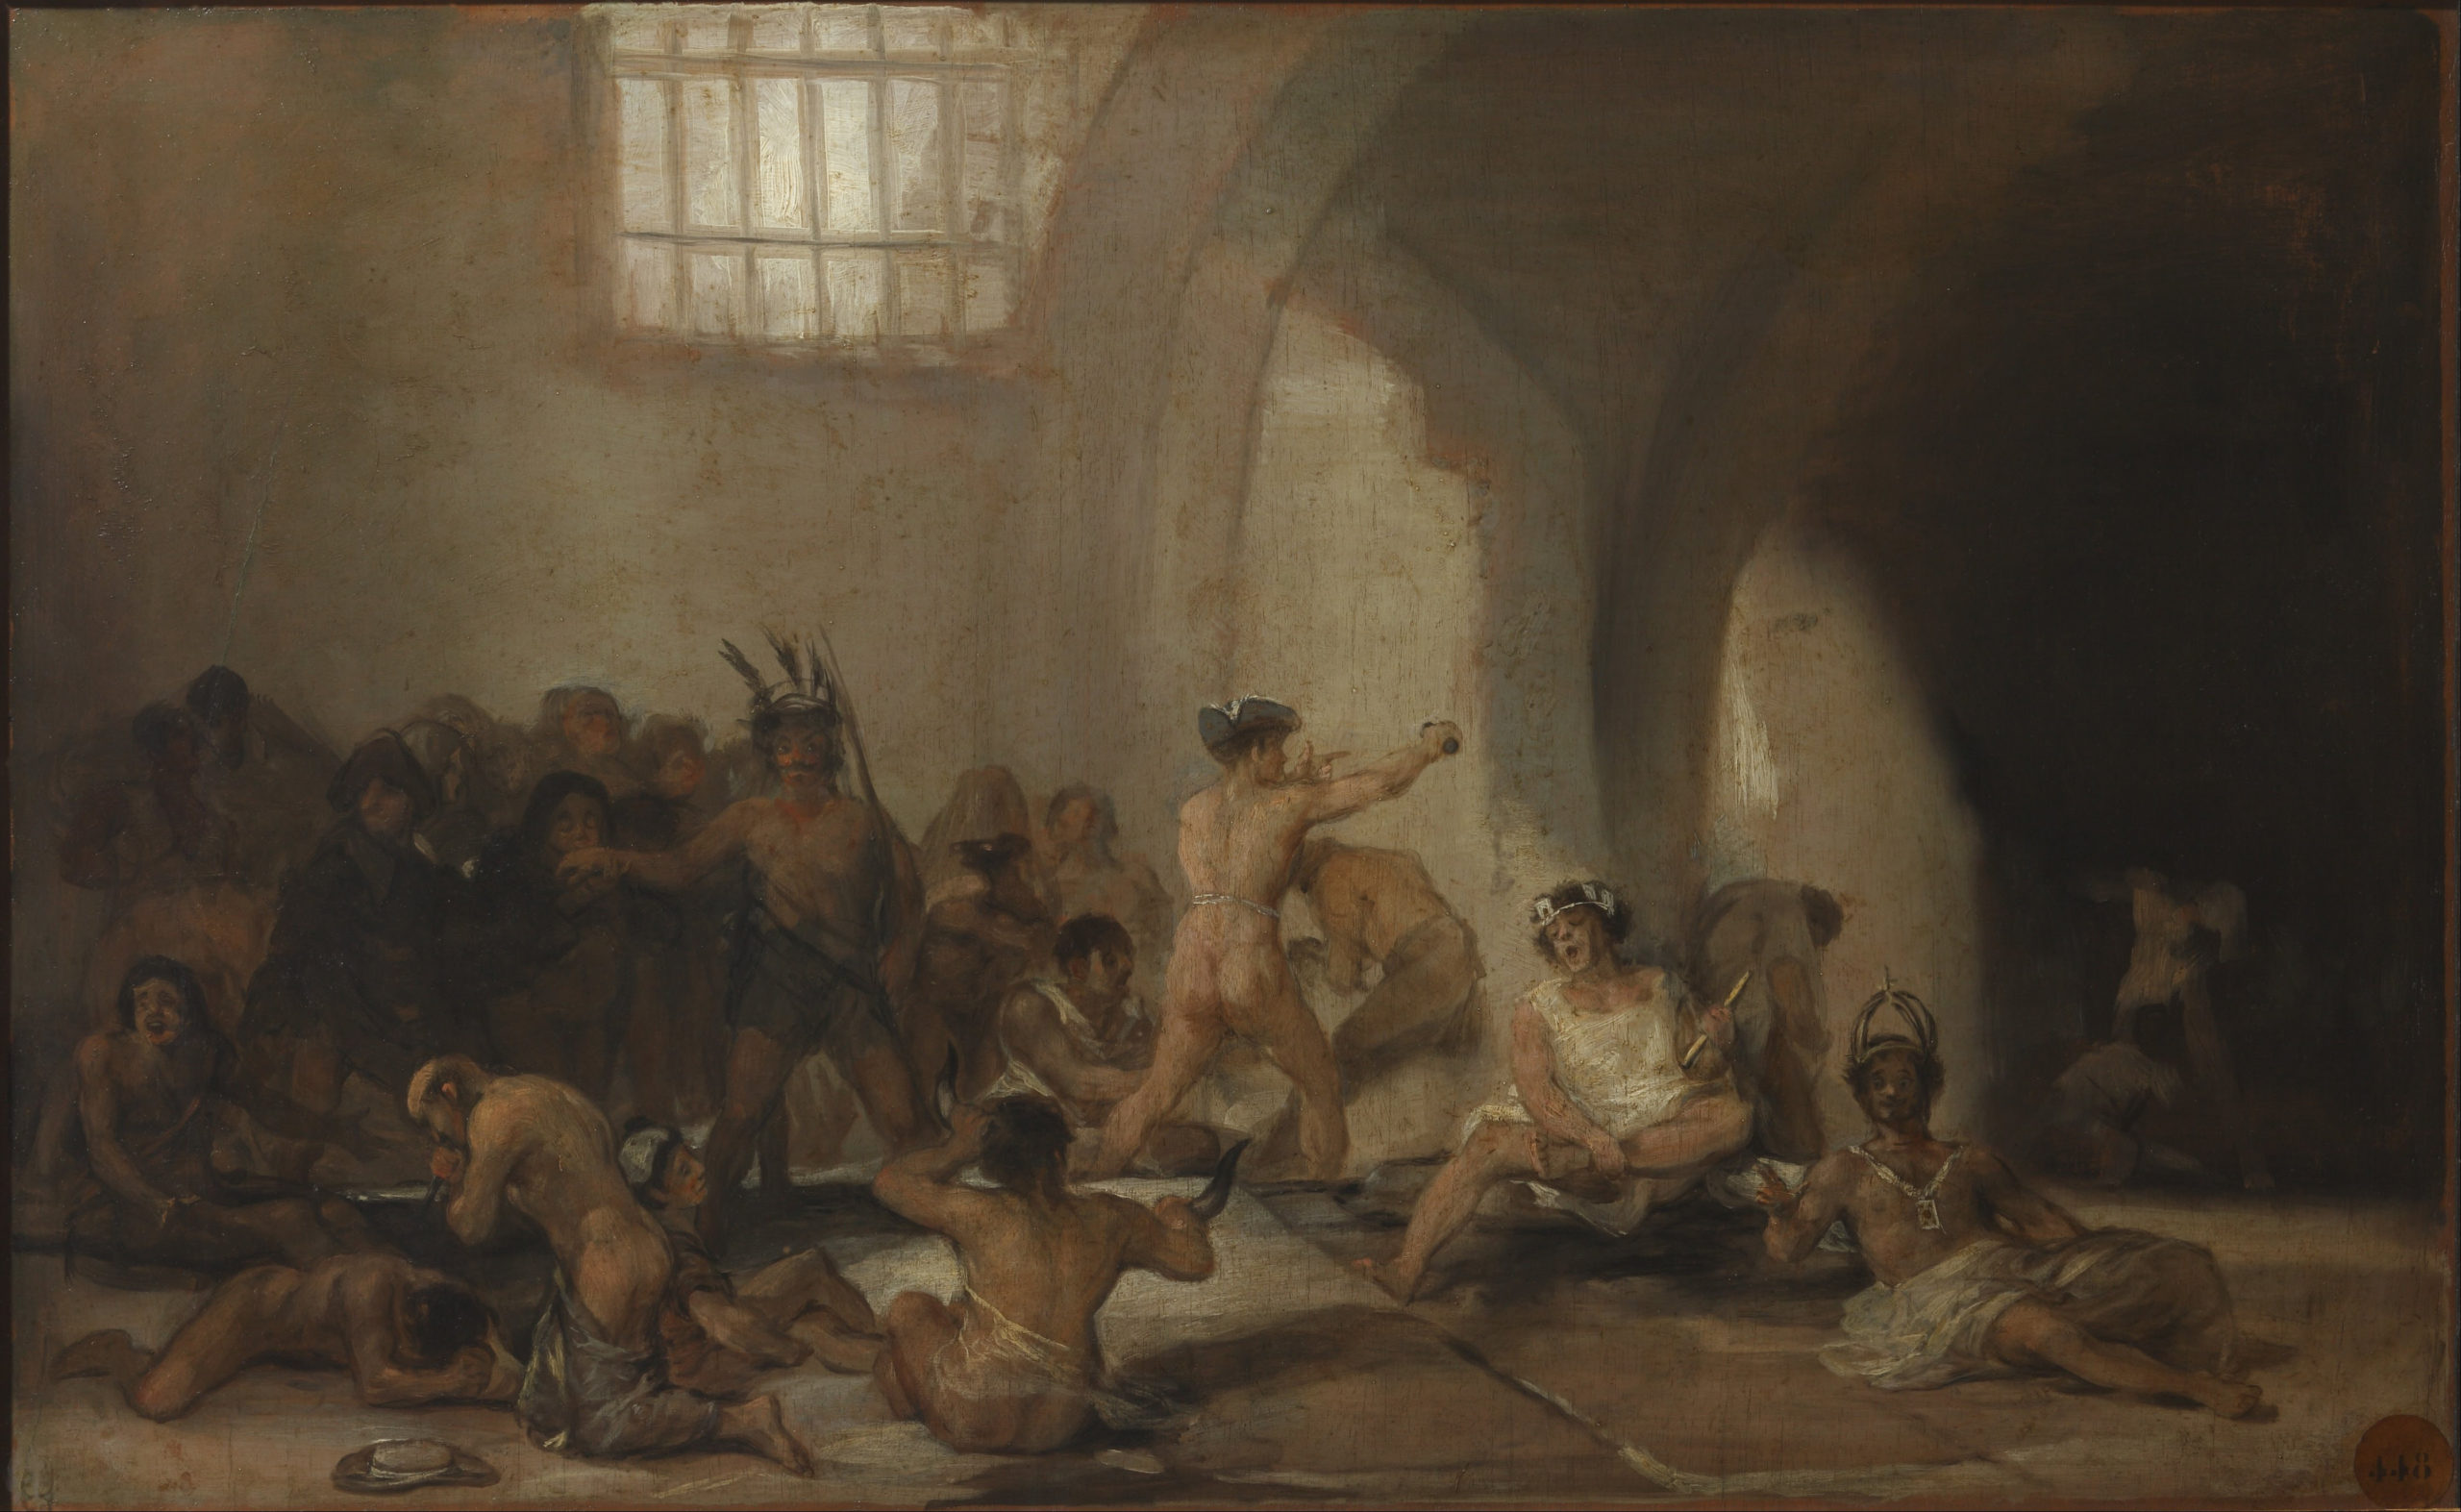 Francisco de Goya's The Madhouse which shows confinement in an asylum 1816-1819